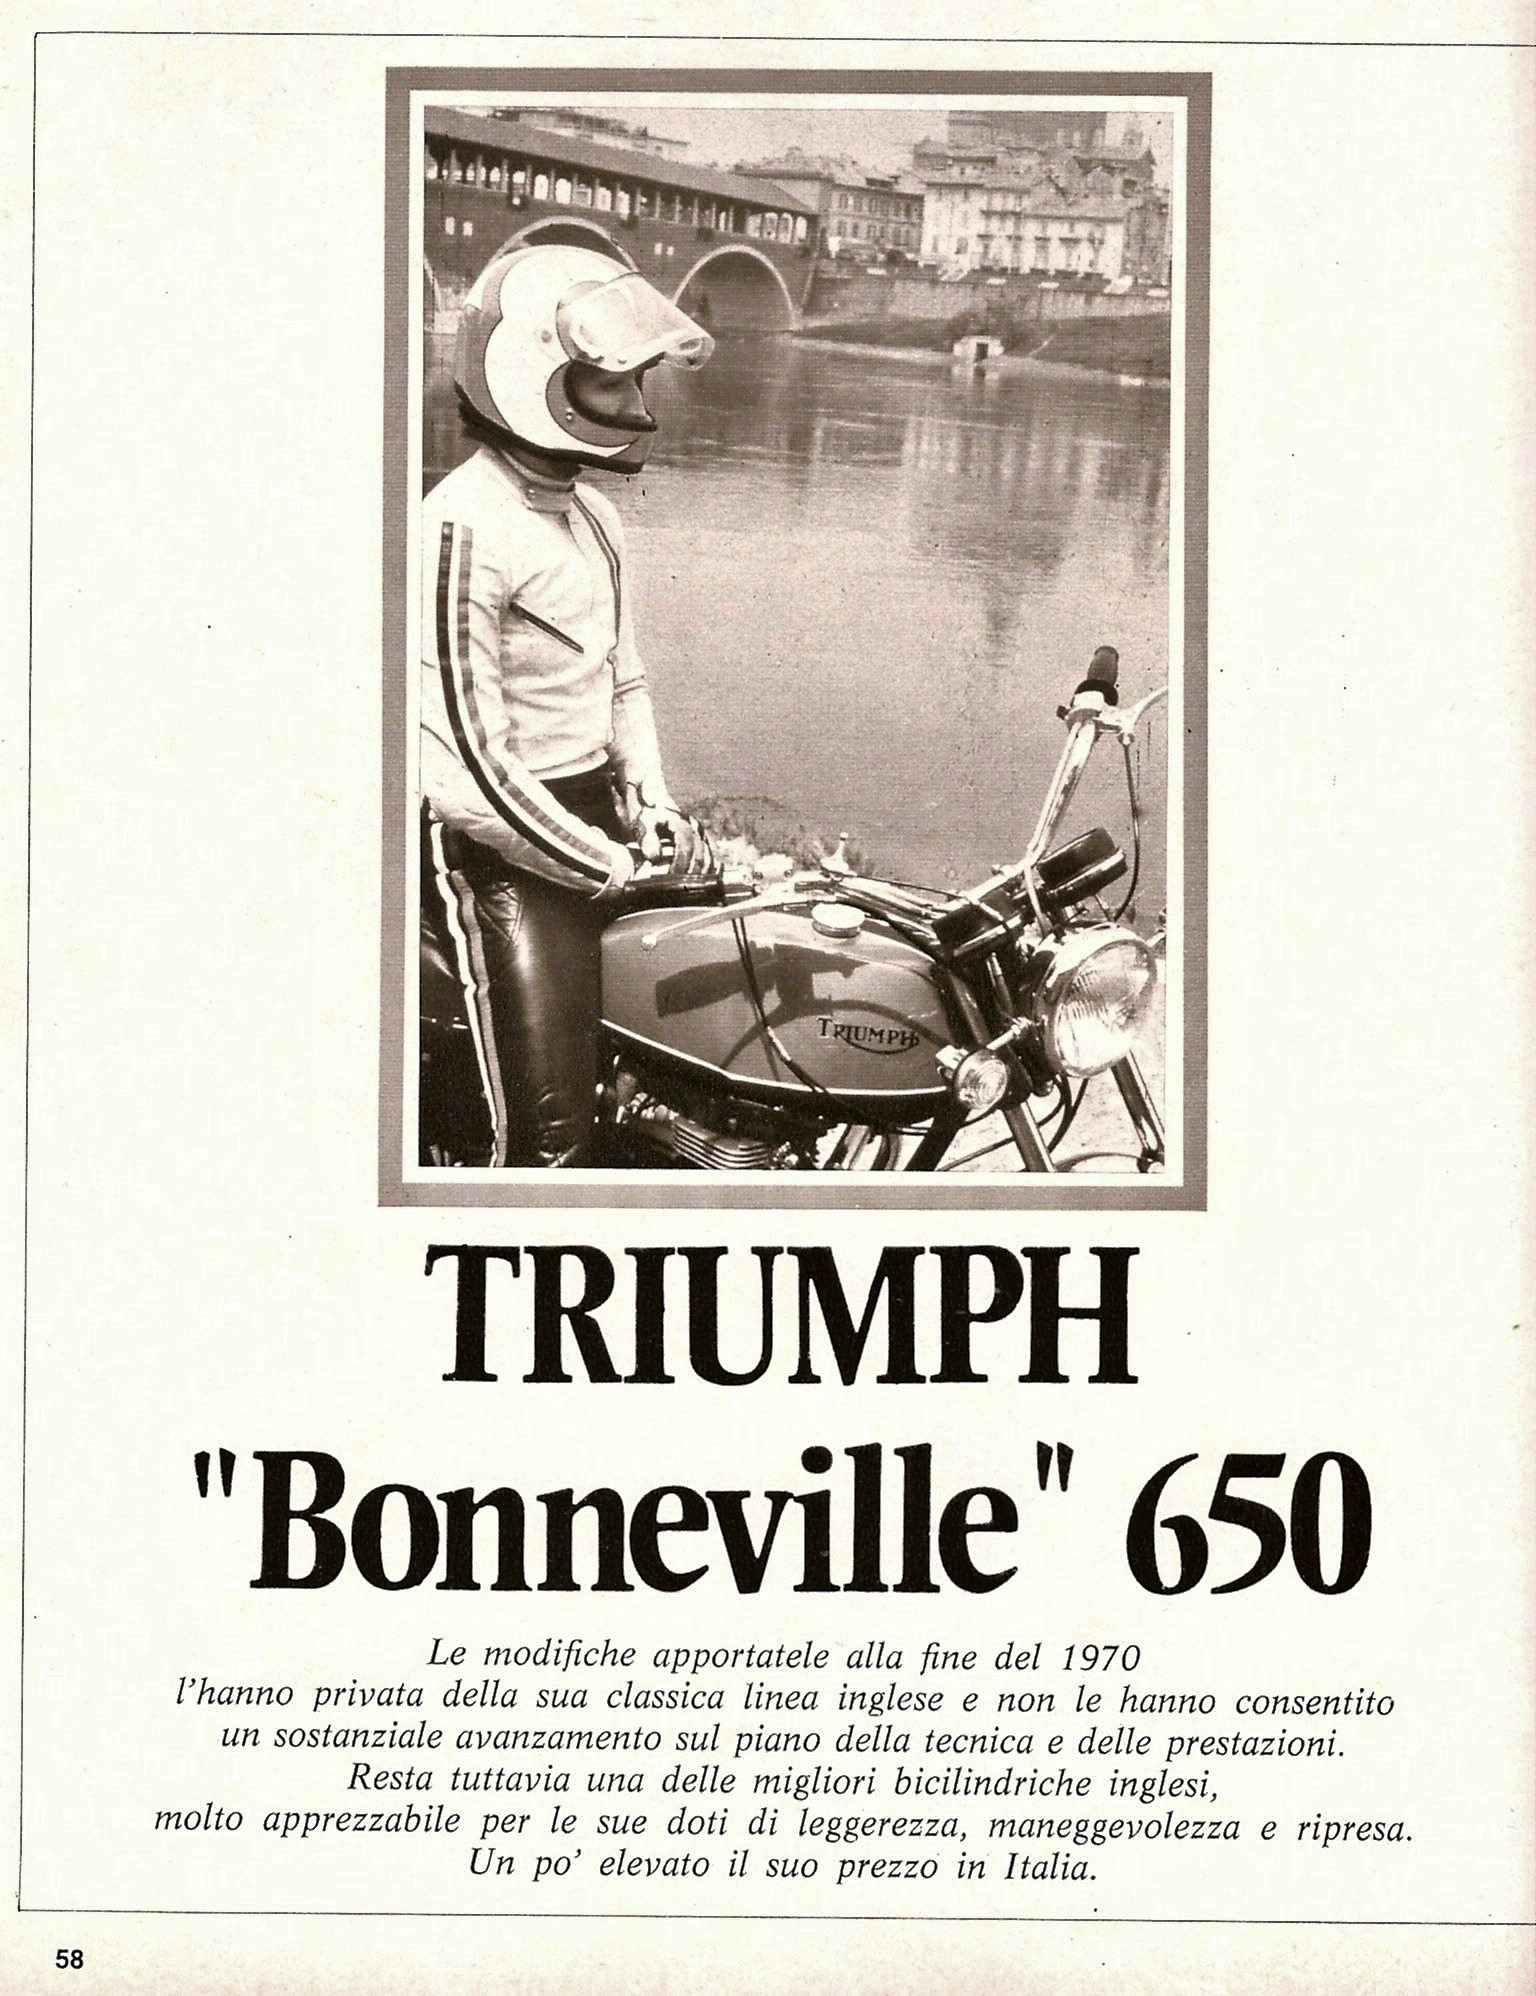 1972 Triumph Bonneville road test.1.jpg